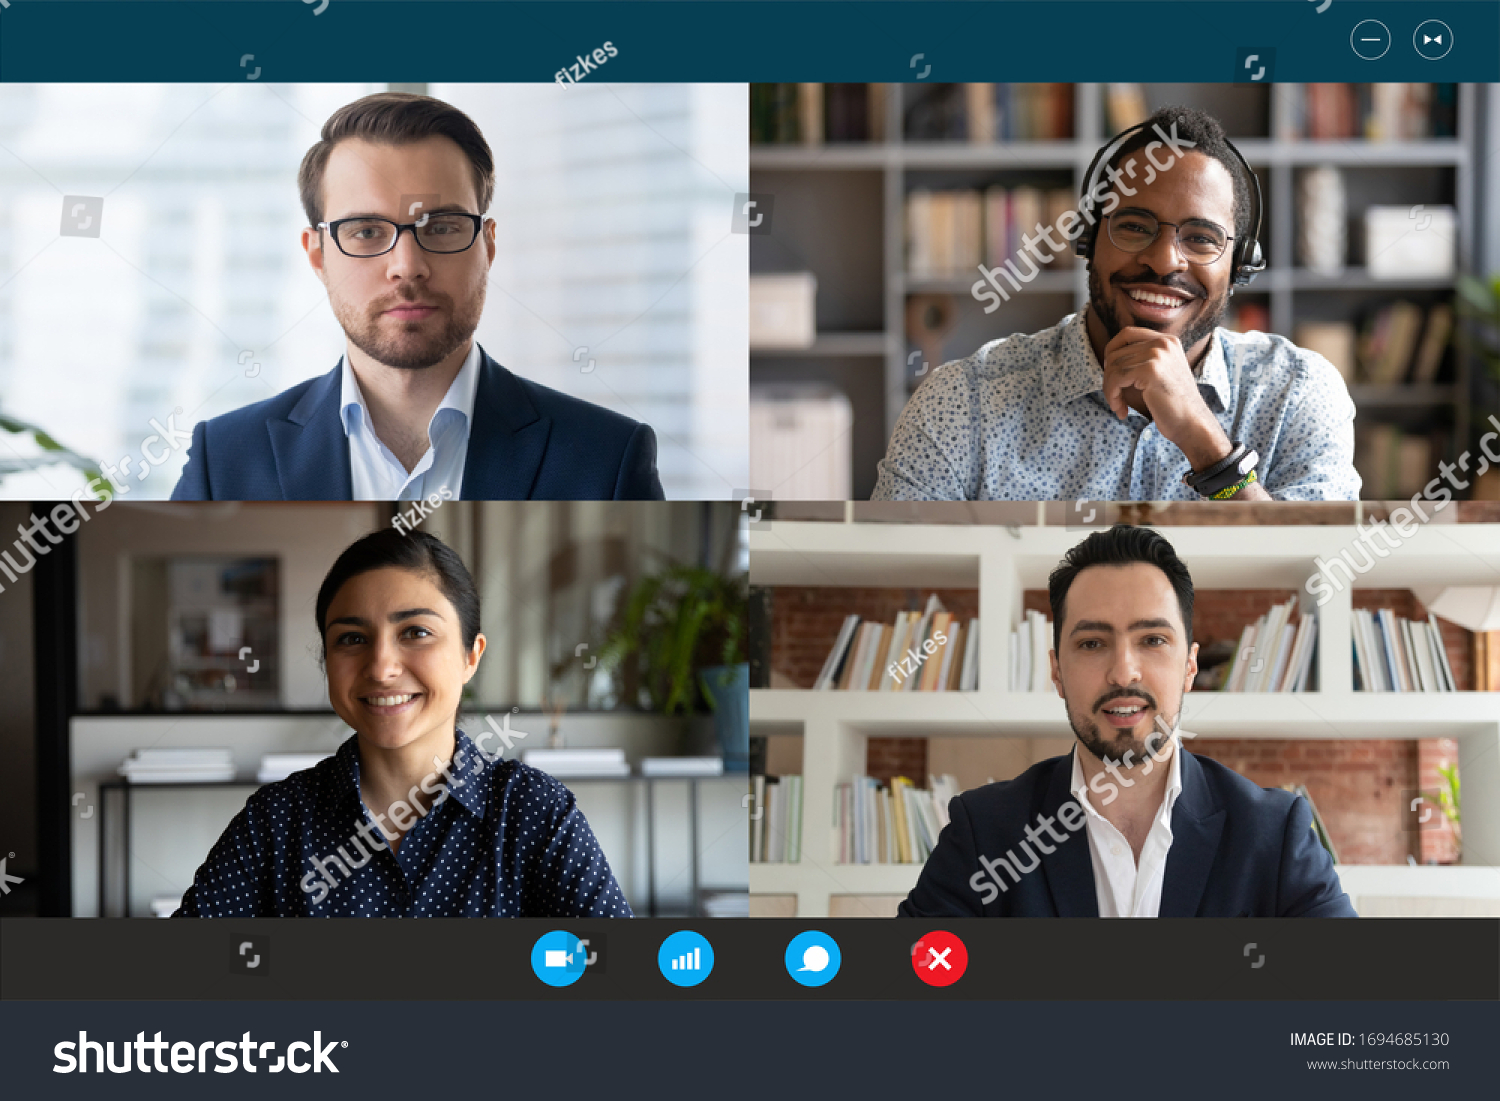 Head shot participants videoconference on-line meeting. Middle-east indian african european partners negotiating use videocall. Corporate staff solve issues remotely easy virtual communication concept #1694685130